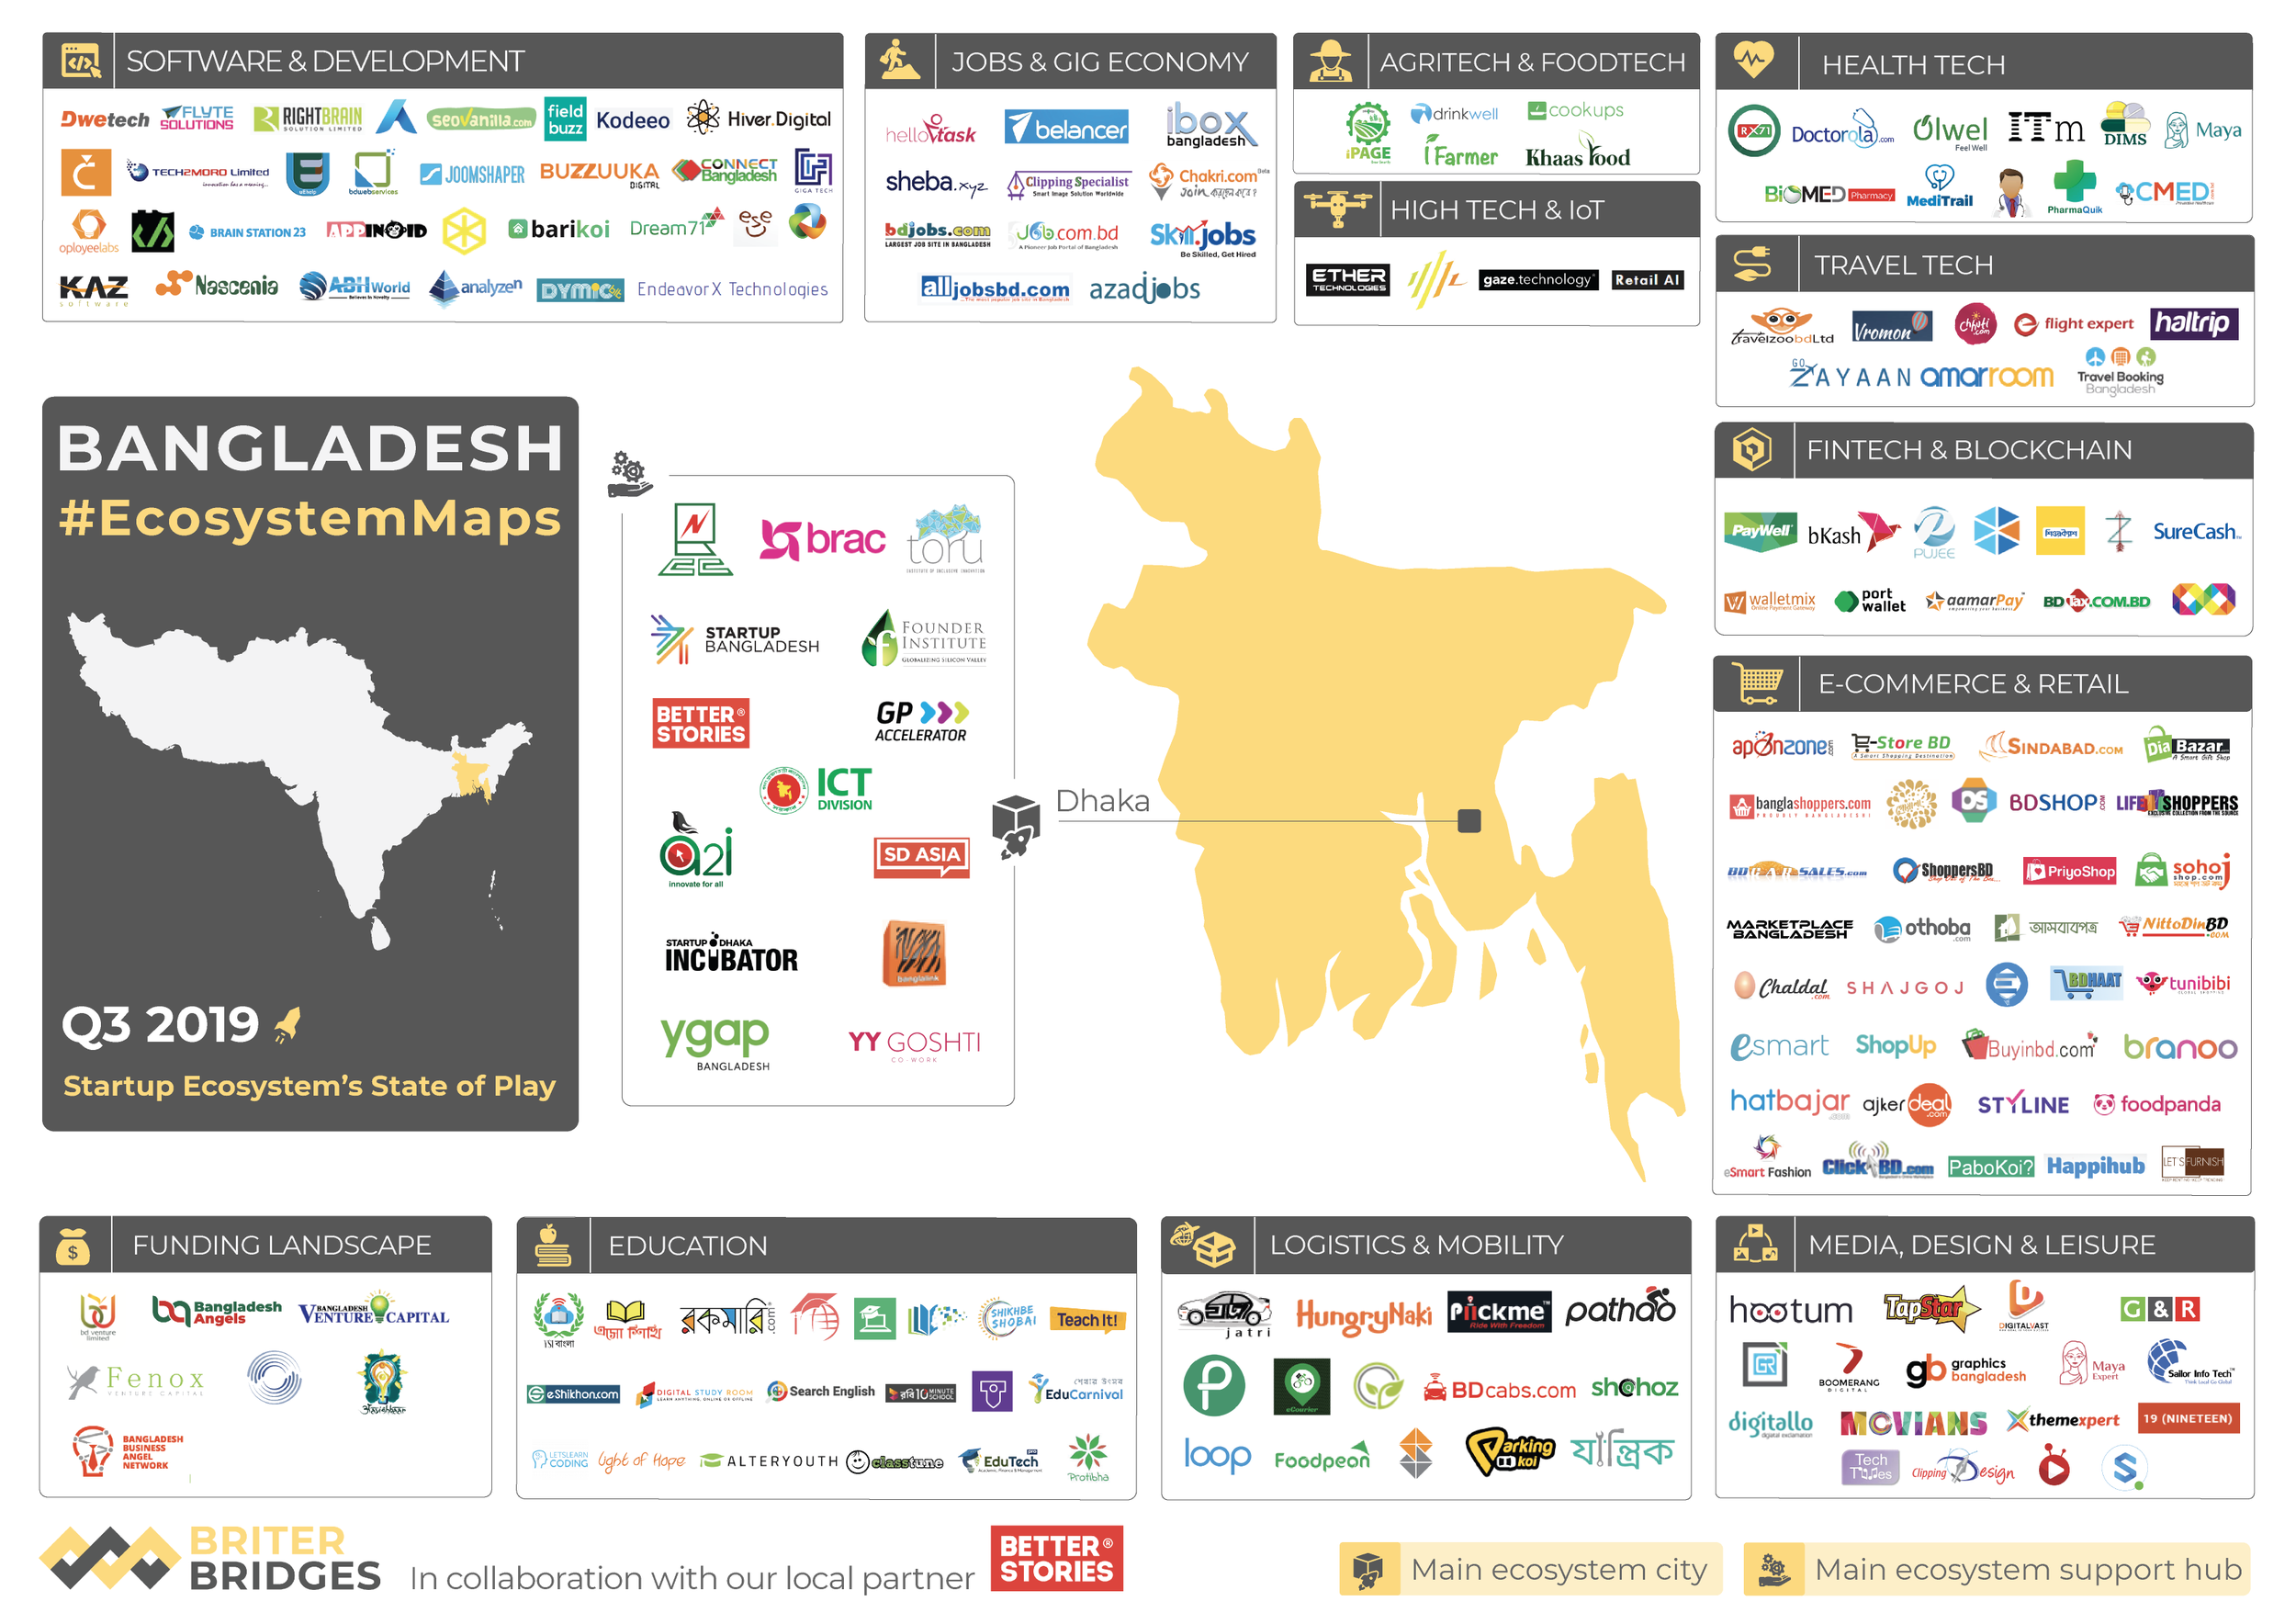 Bangladesh's Tech Ecosystem Map